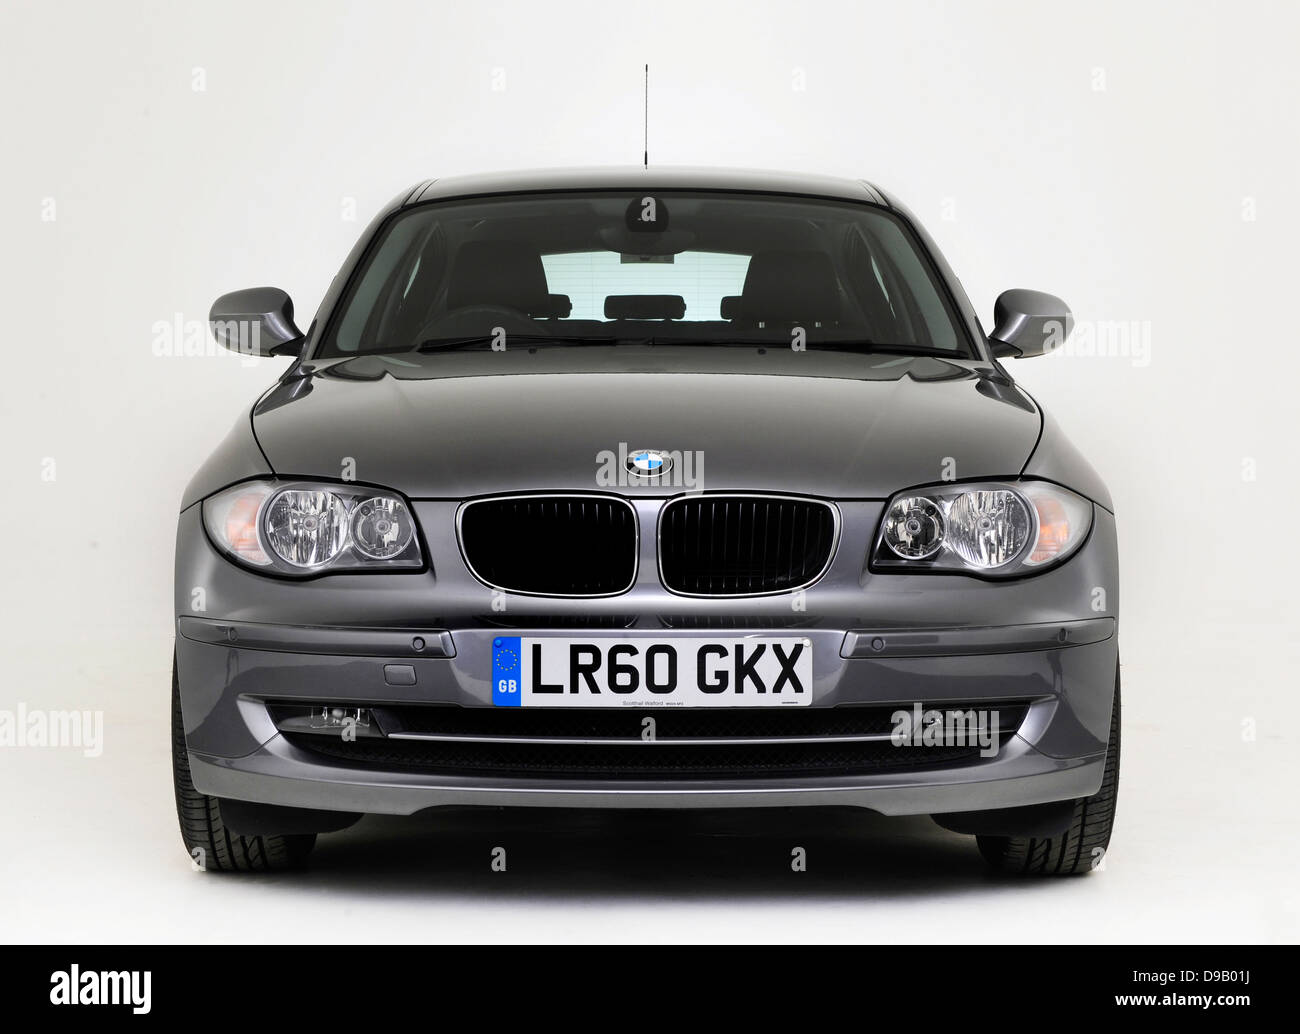 2011 BMW 118d - Stock Image